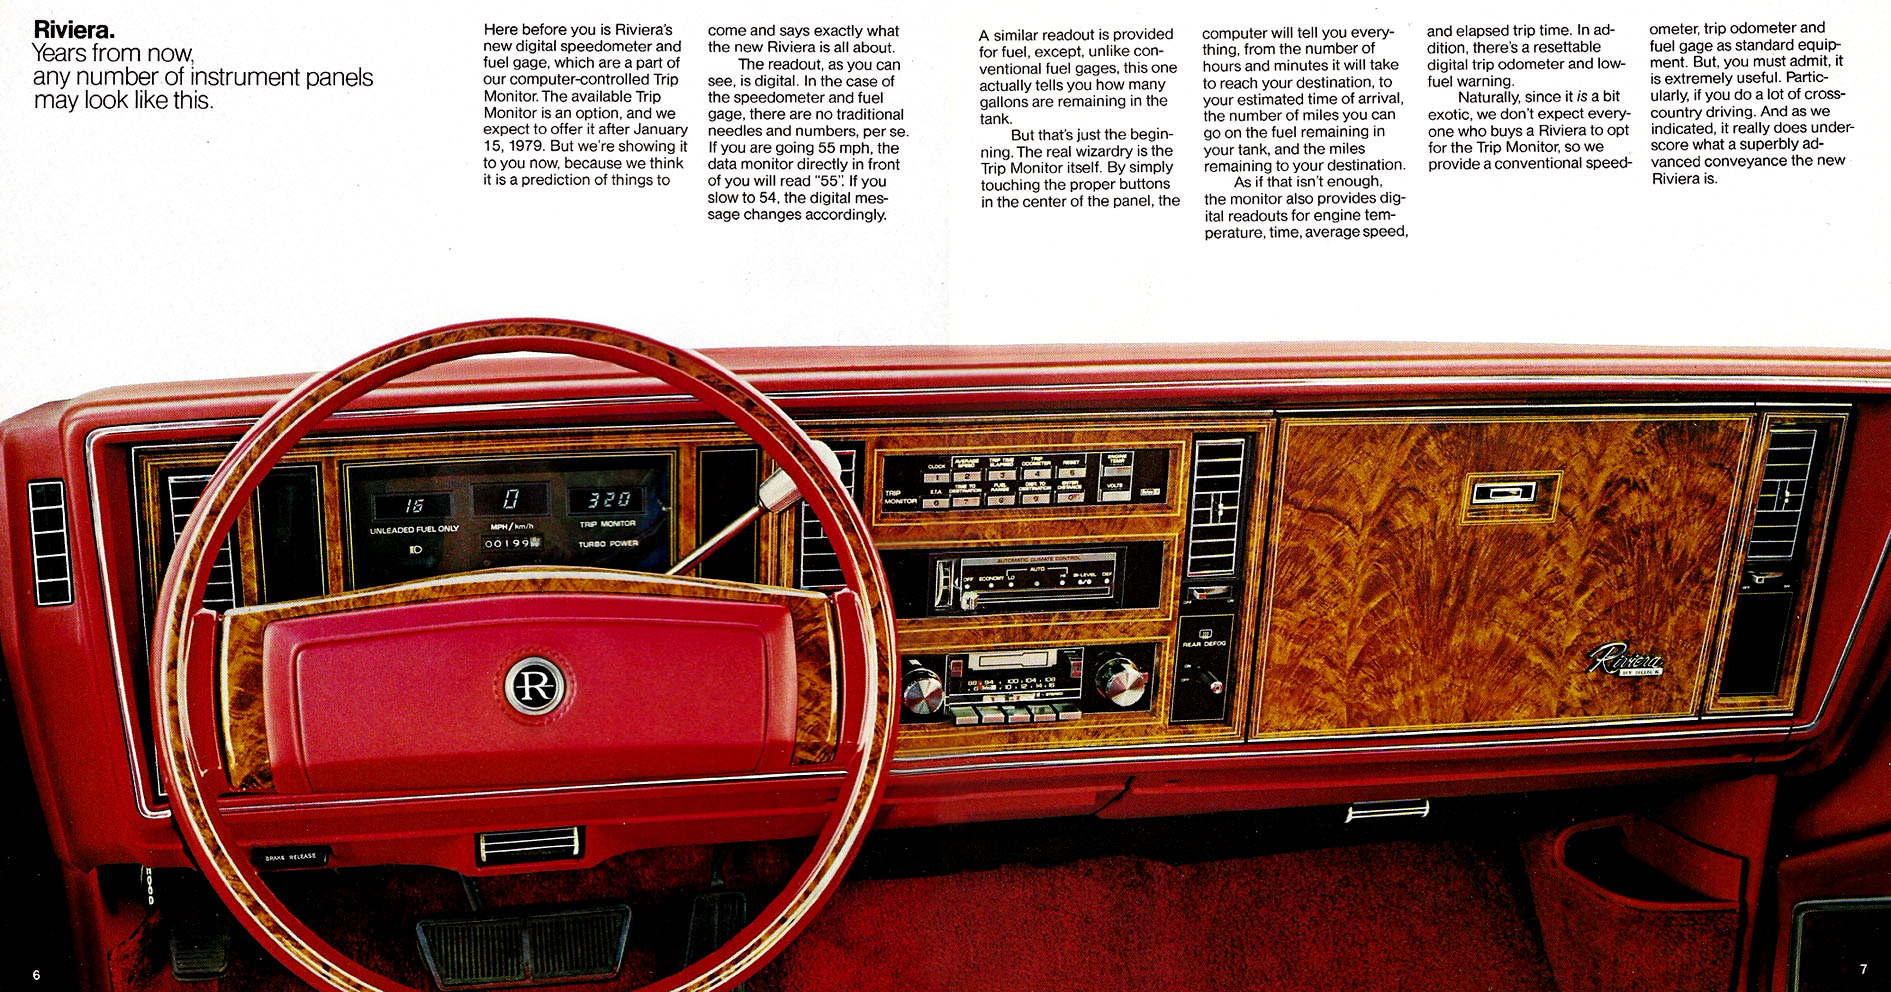 Old Car Dealers >> Image: 1979 Buick Riviera/1979 Buick Riviera-06-07